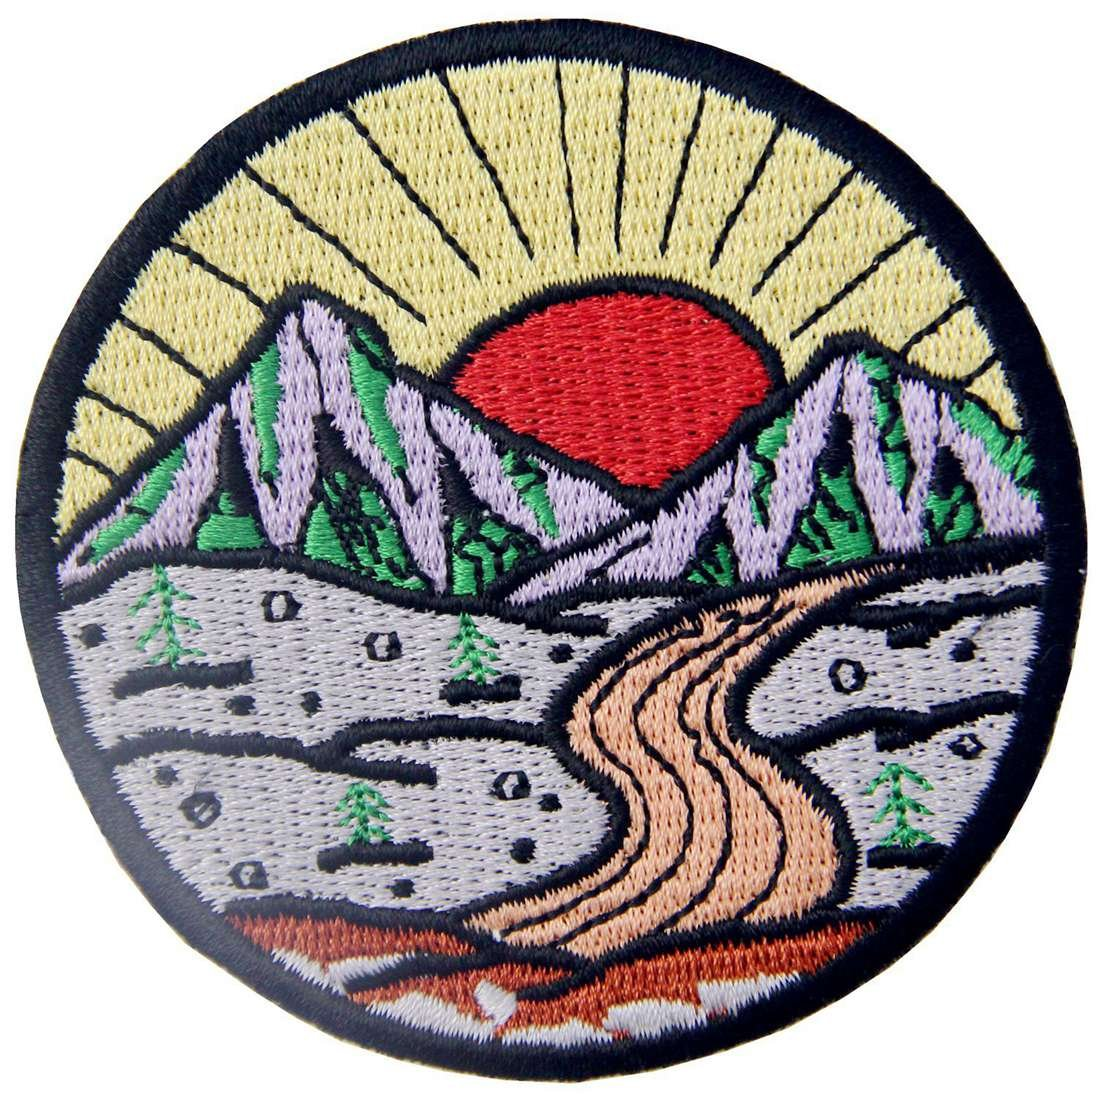 Sunrise from Mountain Vintage Explore Outdoor Patch Embroidered Applique Iron On Sew On Emblem